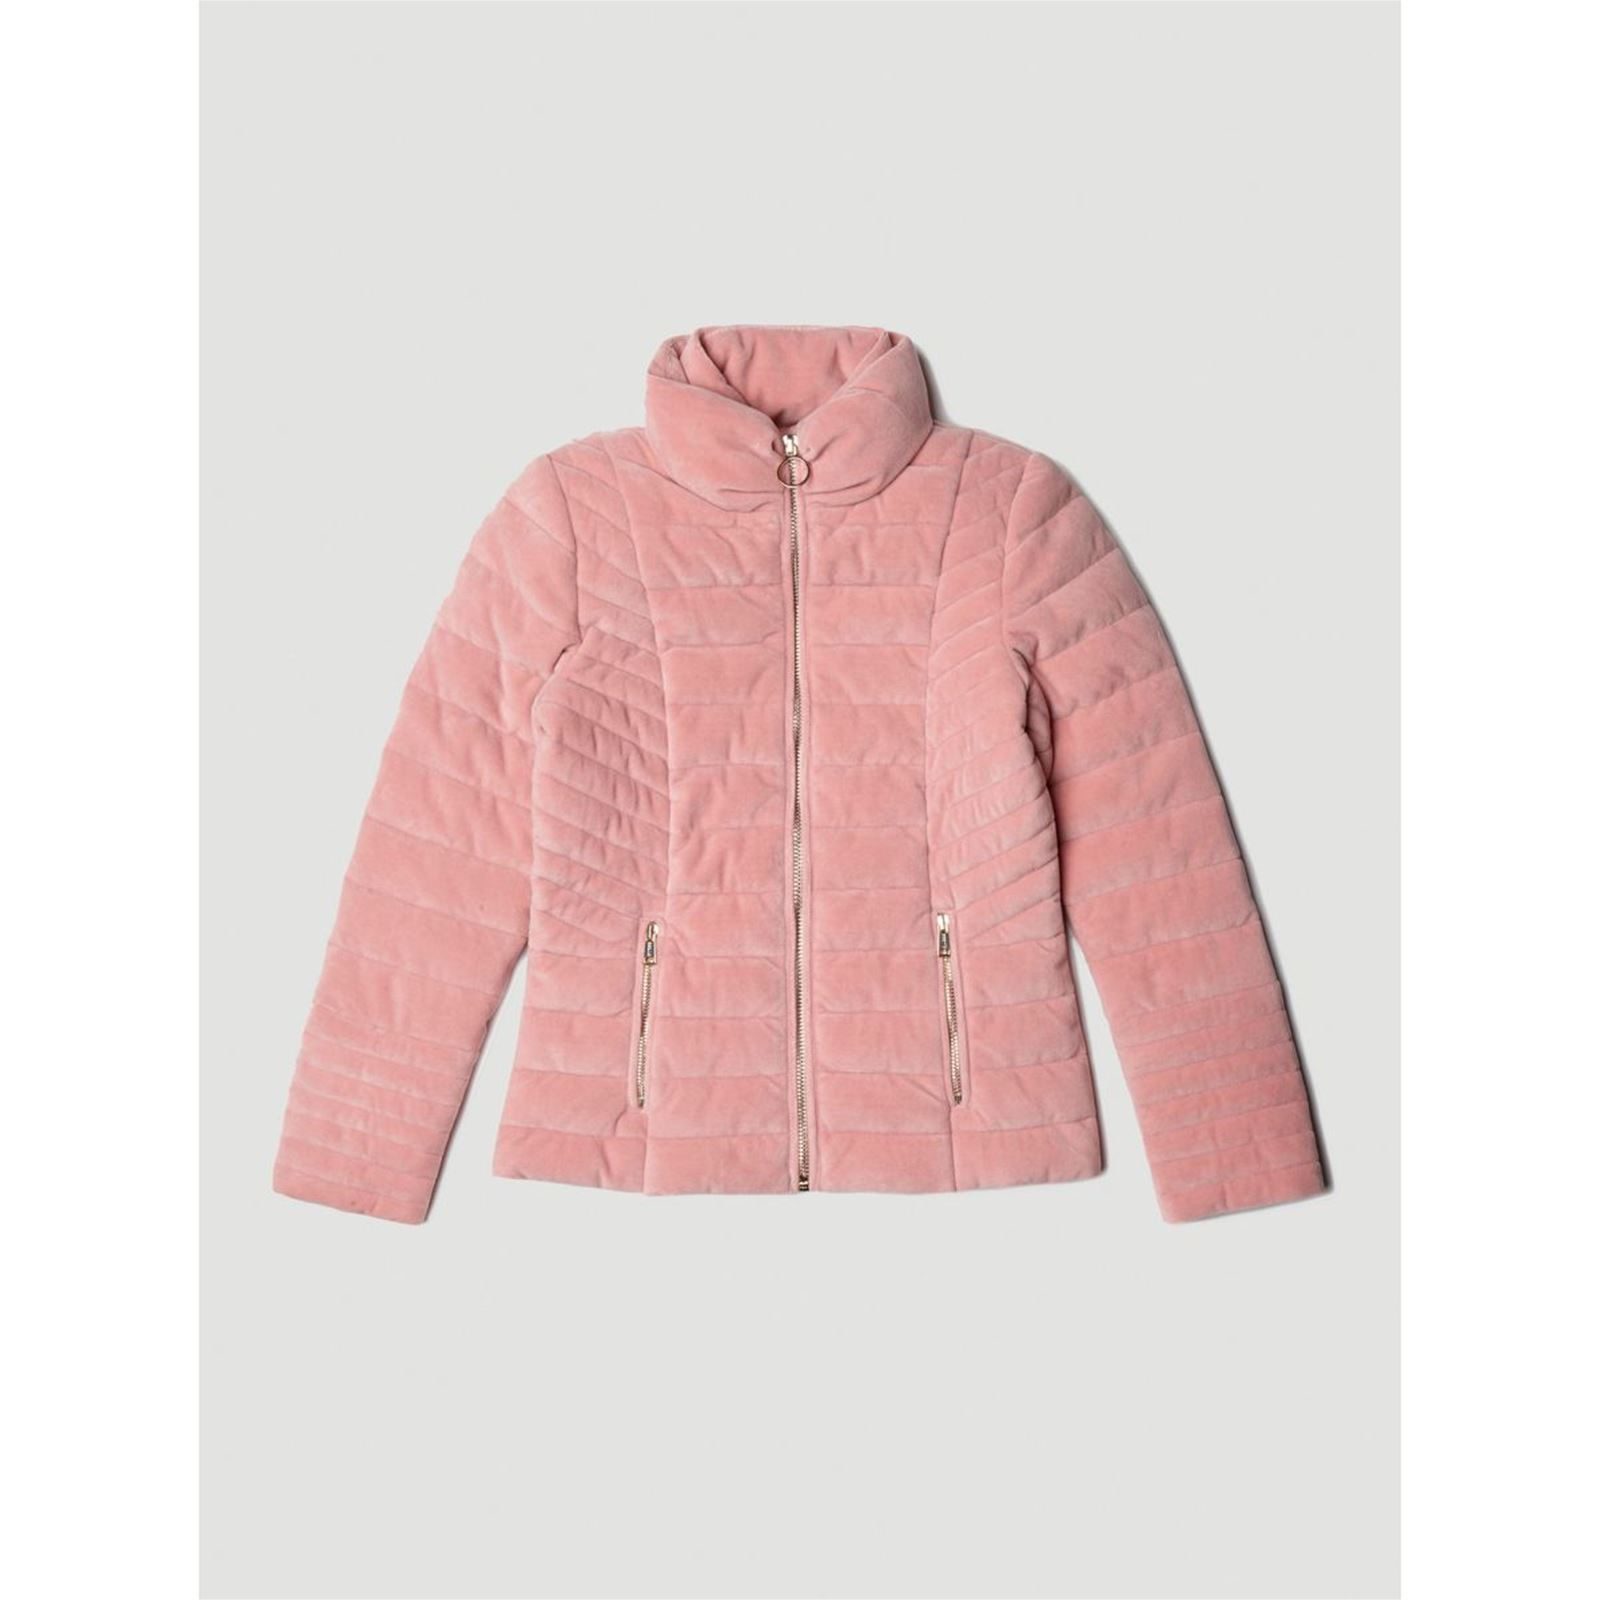 Guess Kids Doudoune velours - rose   BrandAlley 8f133606bc3f